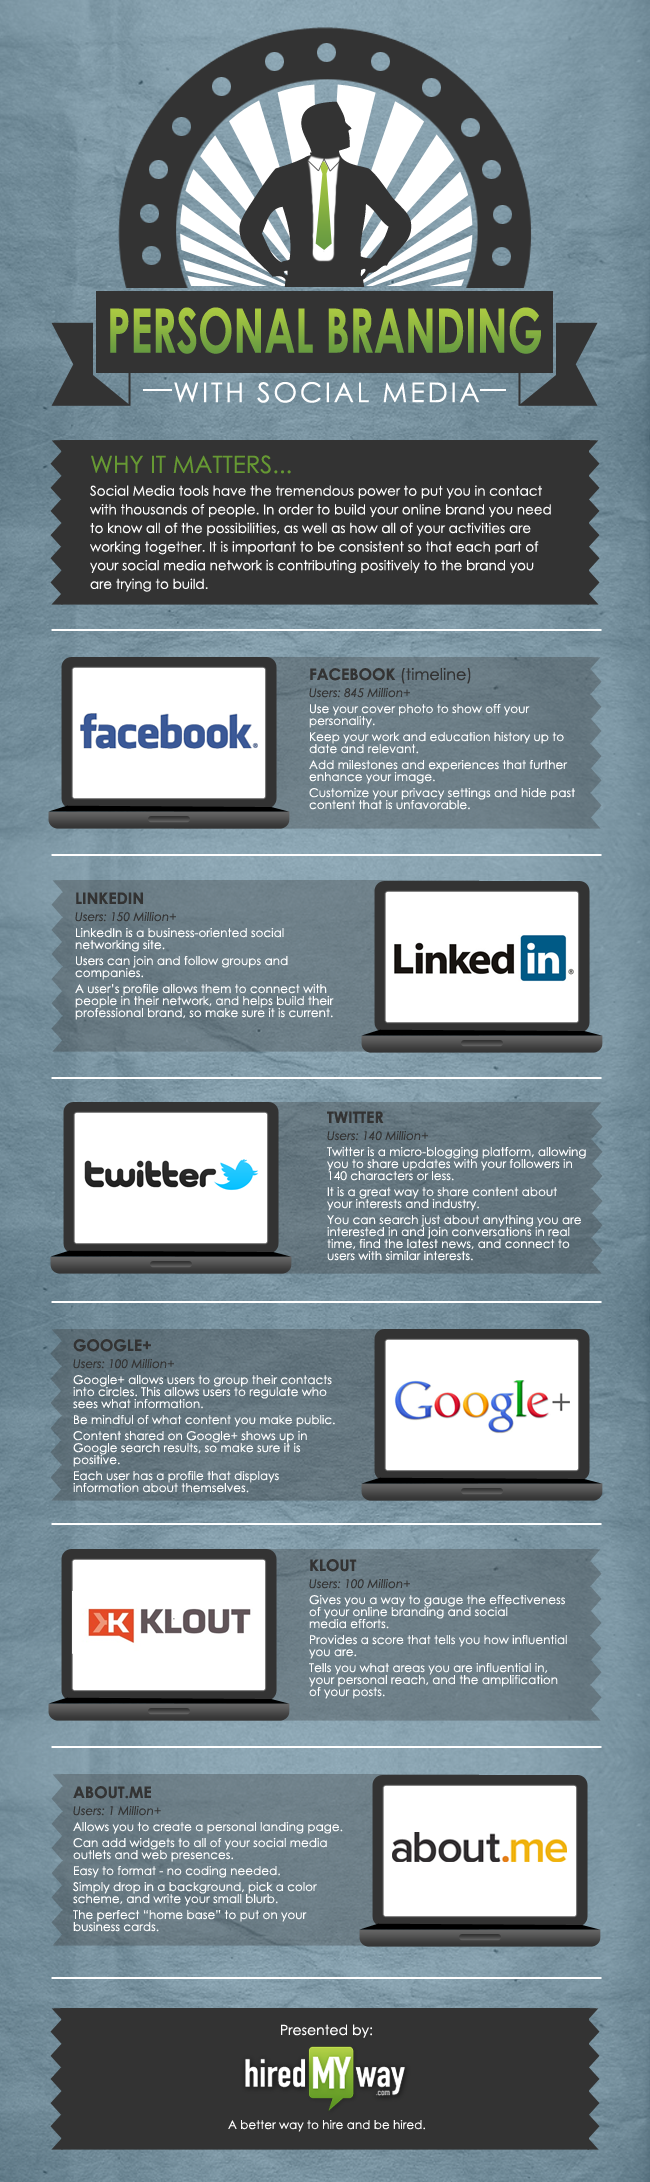 Personal Branding's Leading Tools